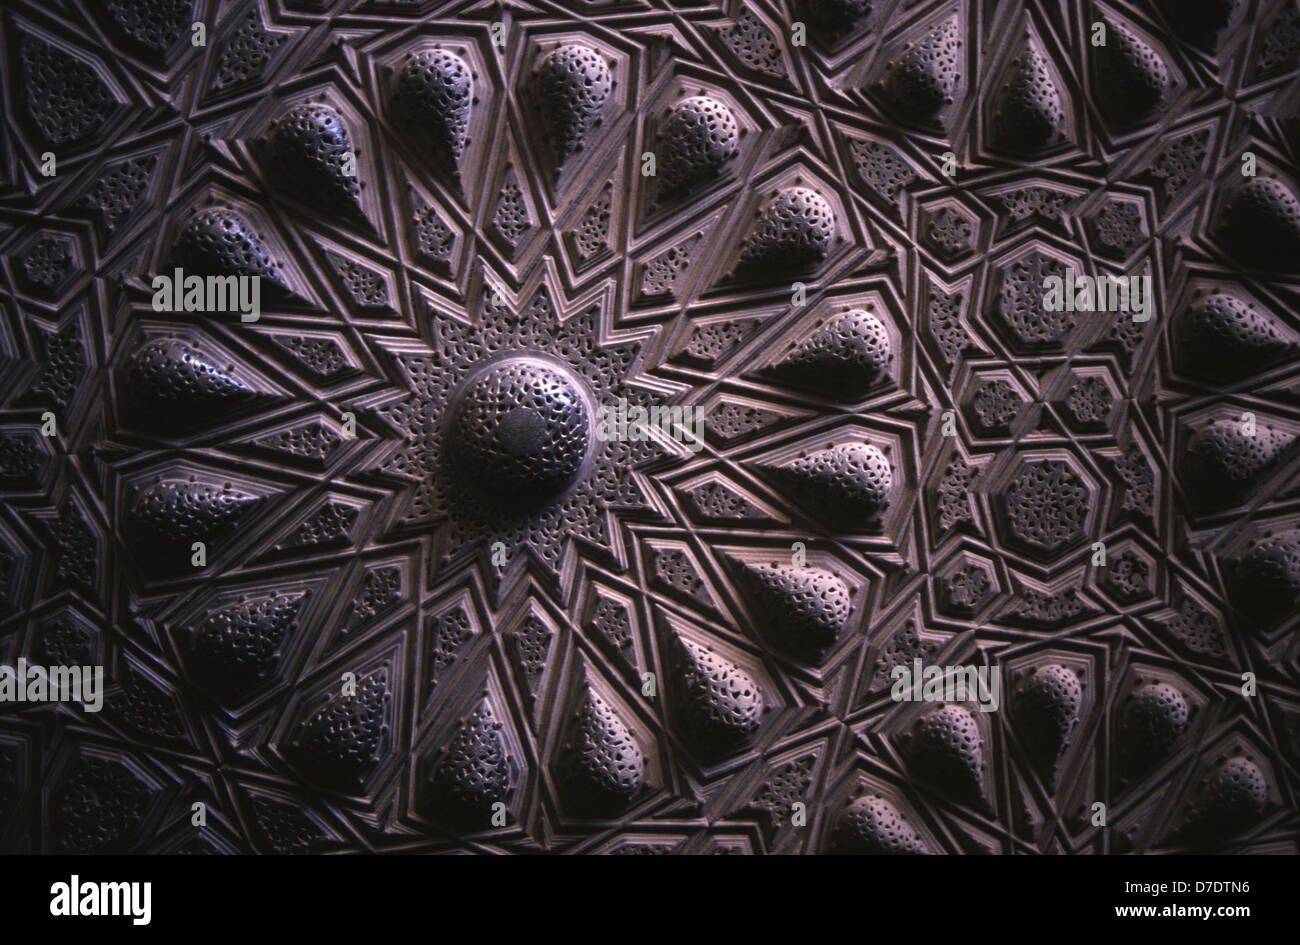 Arabesque ornament carving detail of the bronze gates at Sultan al-Mu'ayyad mosque, Old city of Cairo Egypt - Stock Image